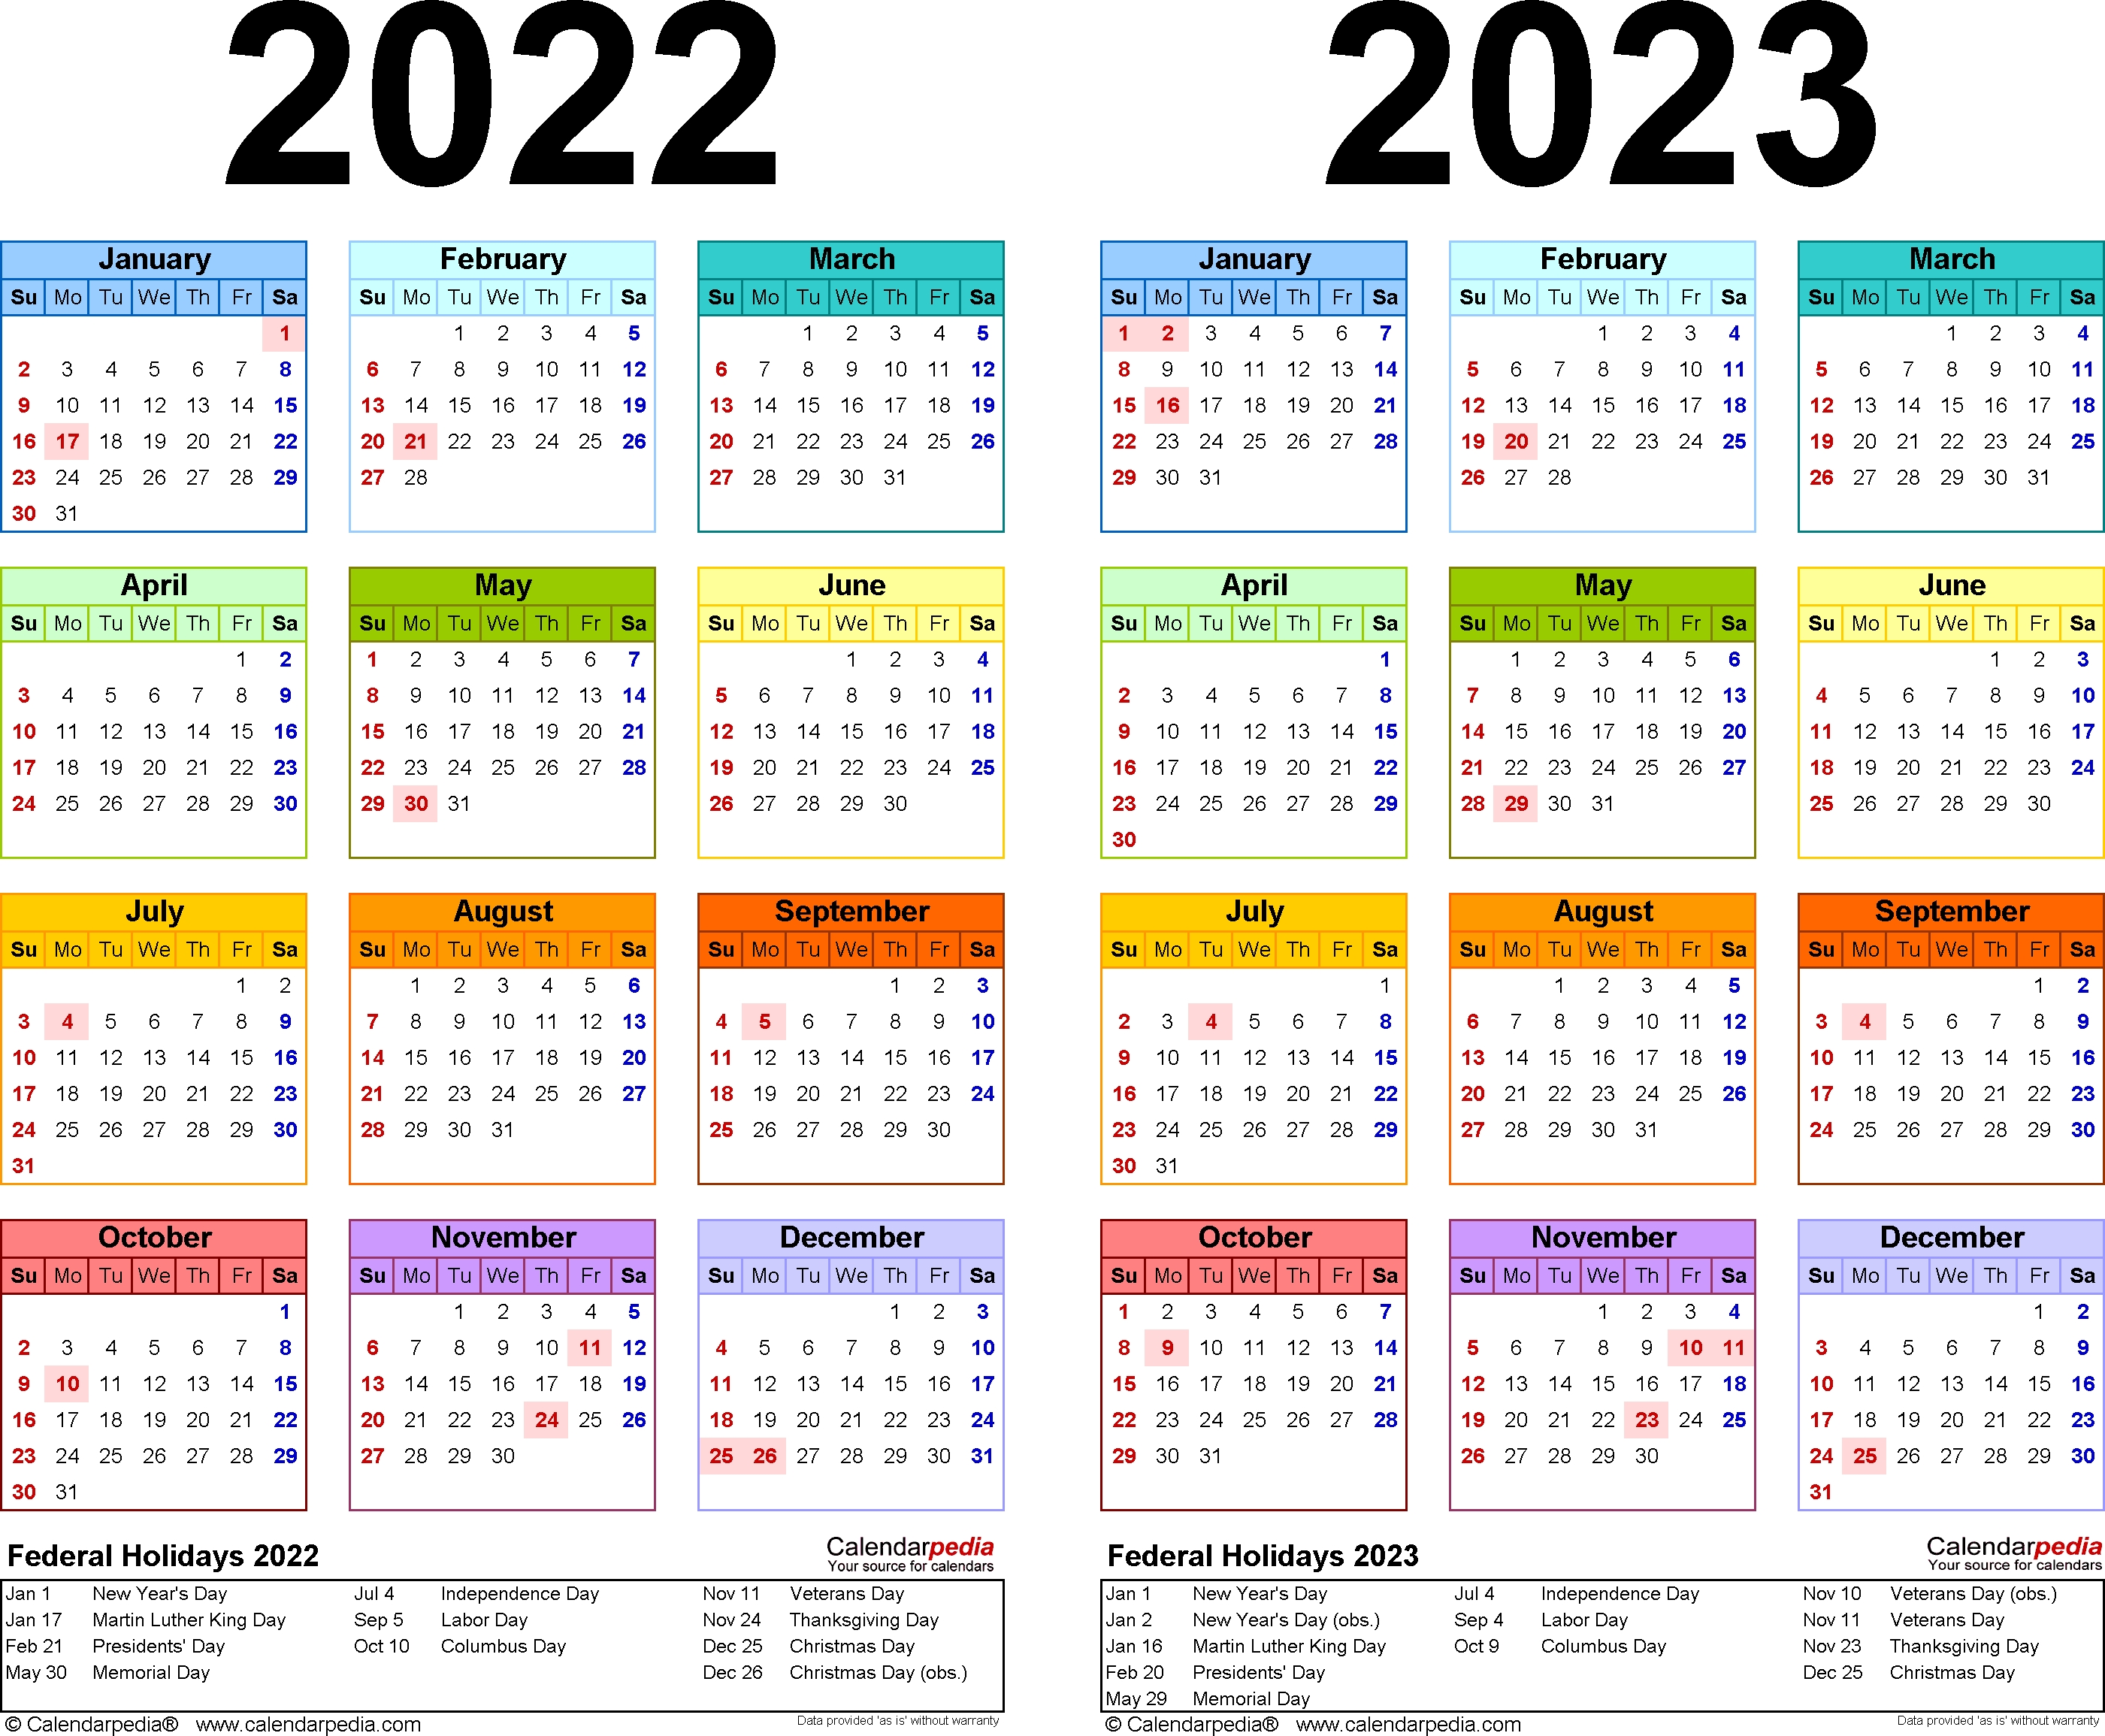 Download free printable 2022 calendar templates that you can easily edit and print. 3 Year Calendar 2022 To 2024 | Month Calendar Printable